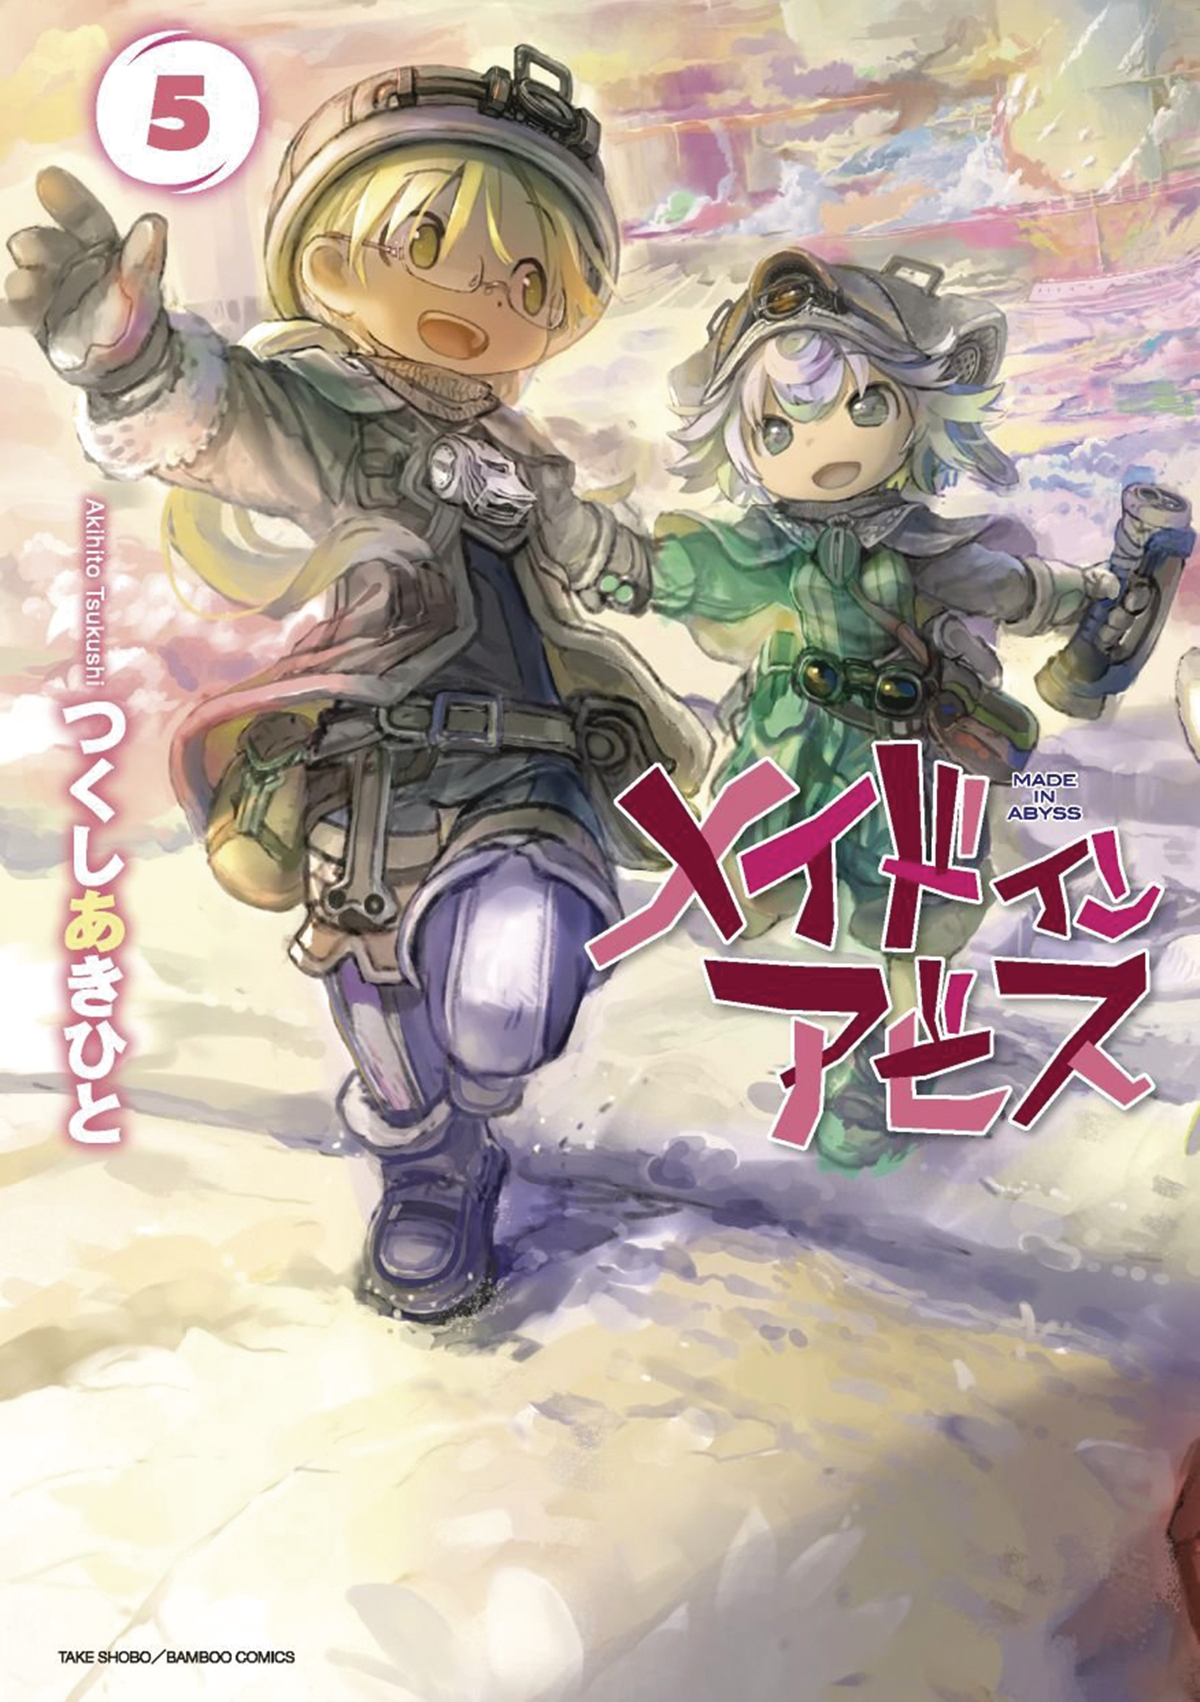 MADE IN ABYSS GN VOL 05